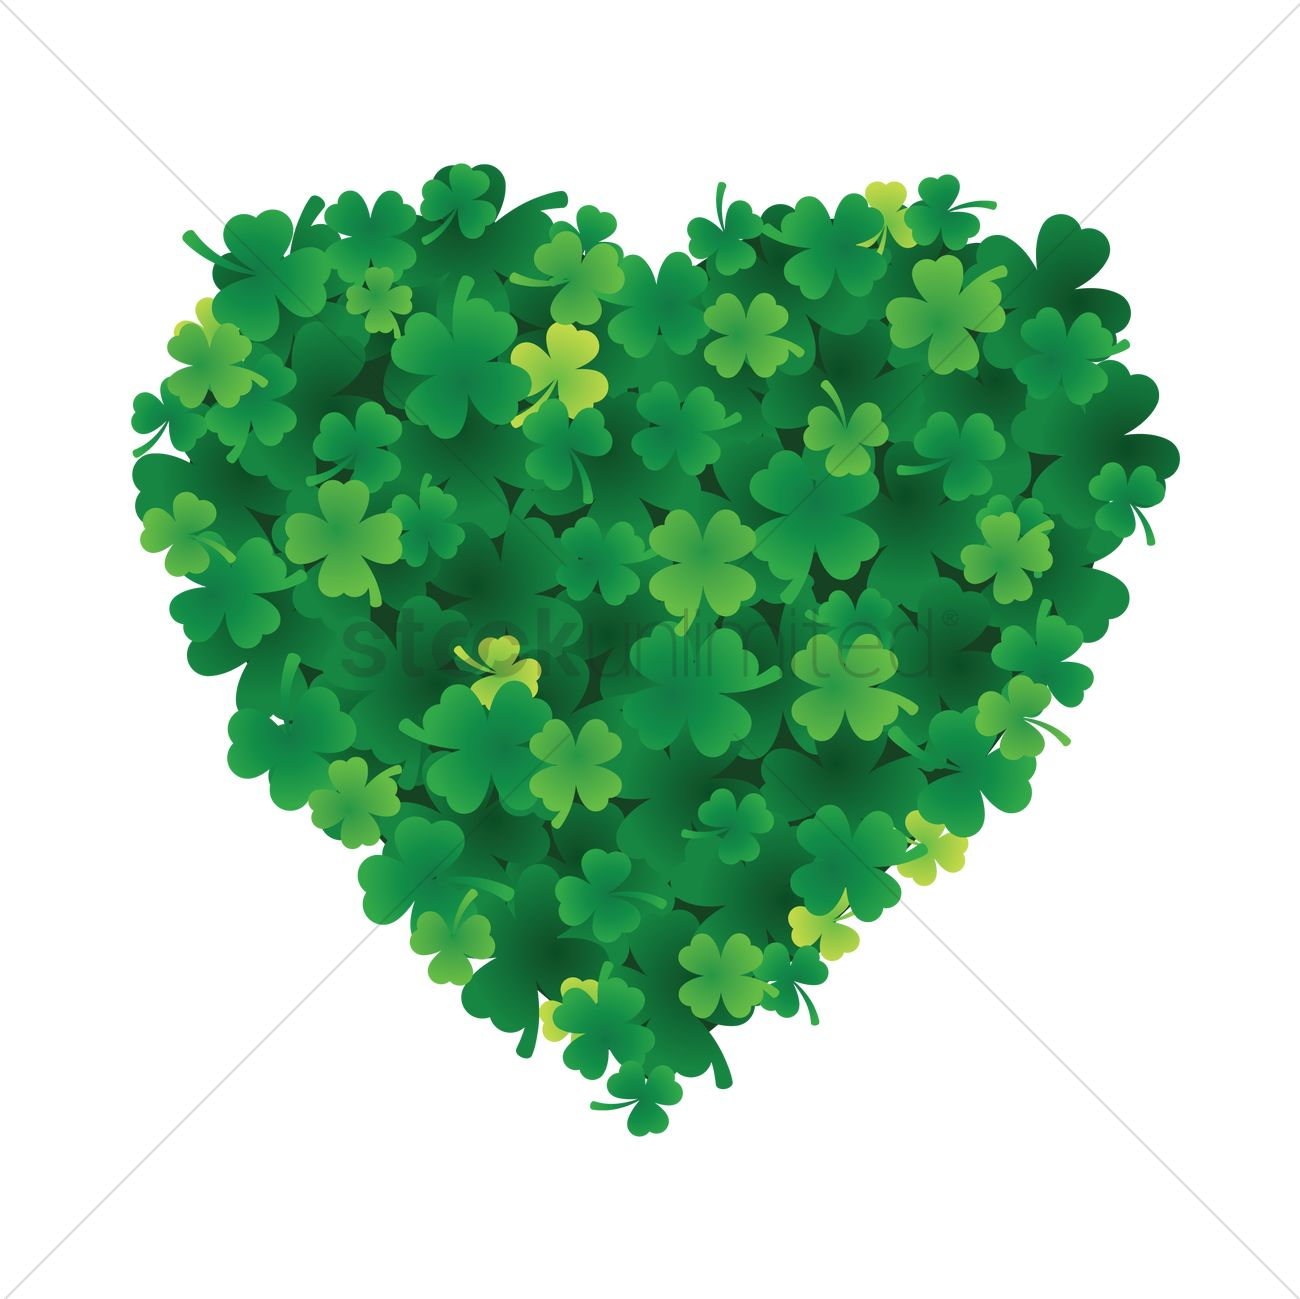 Heart shaped of leaves clover Vector Image - 1991394 | StockUnlimited